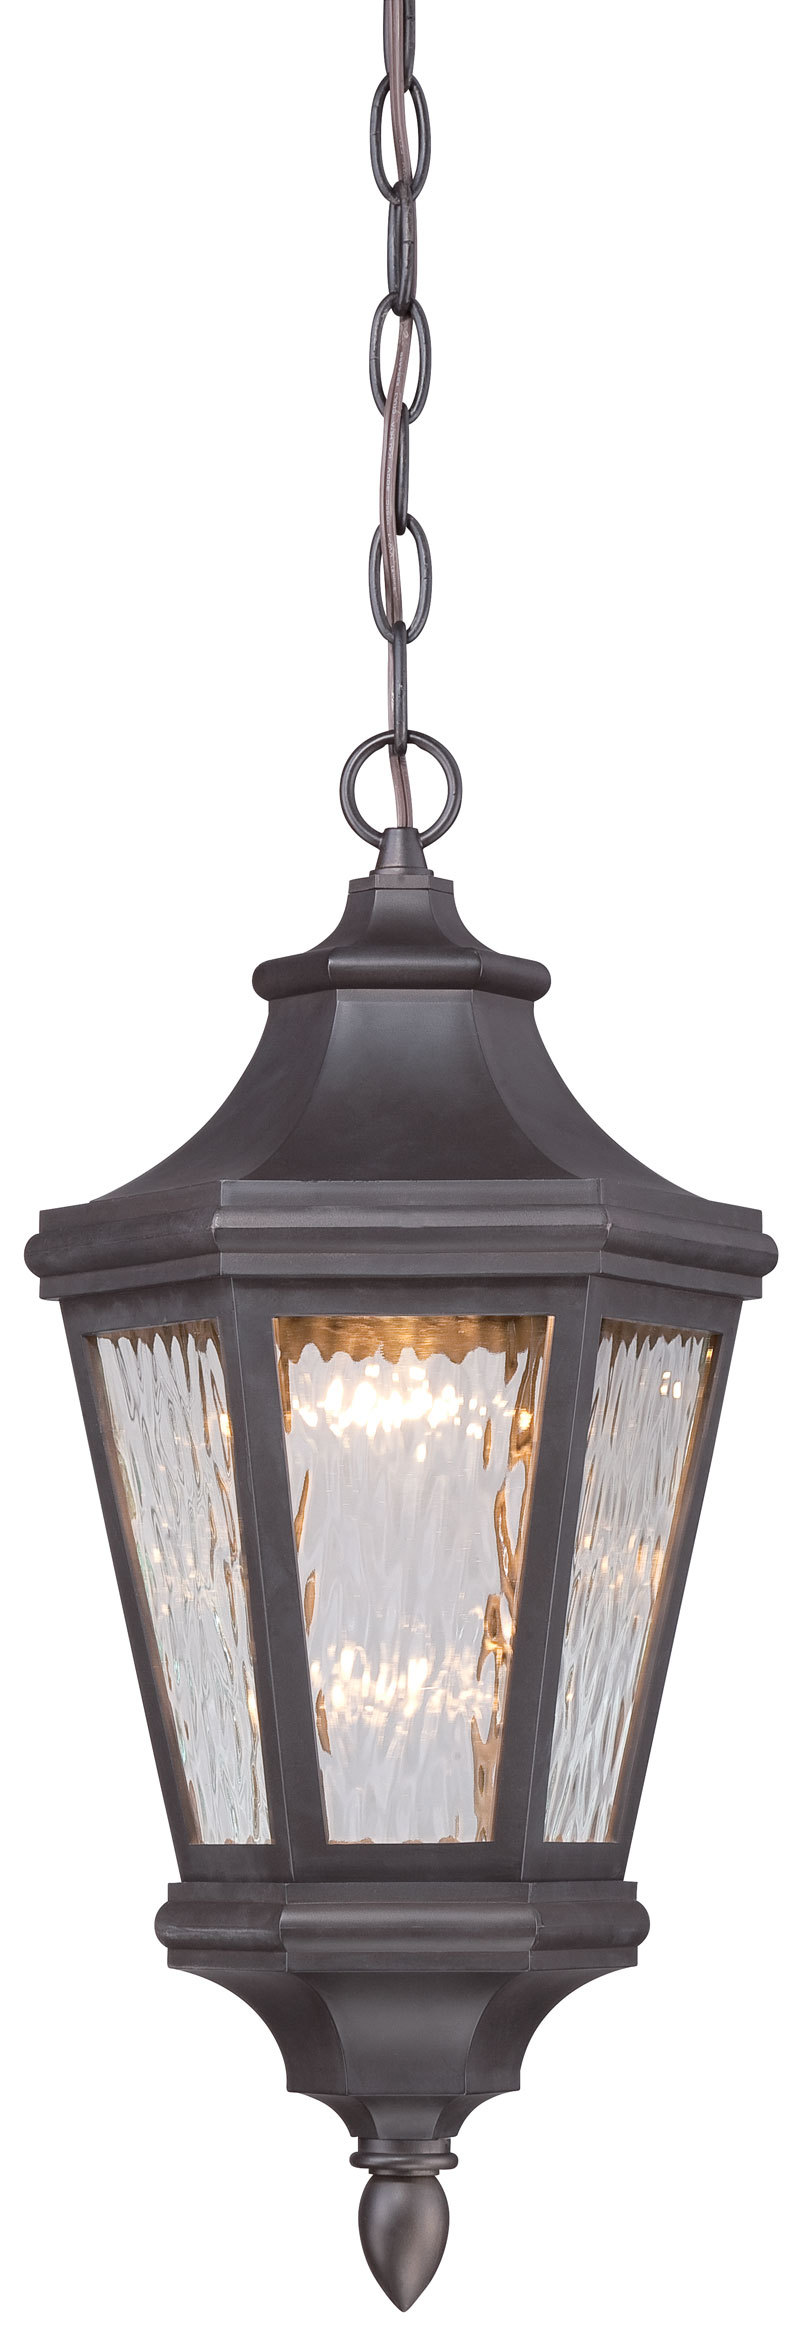 Wilkinson's House of Lighting in St.George, Utah, United States, Minka-Lavery 71824-143-l, LED Outdoor Lantern, Hanford Pointe